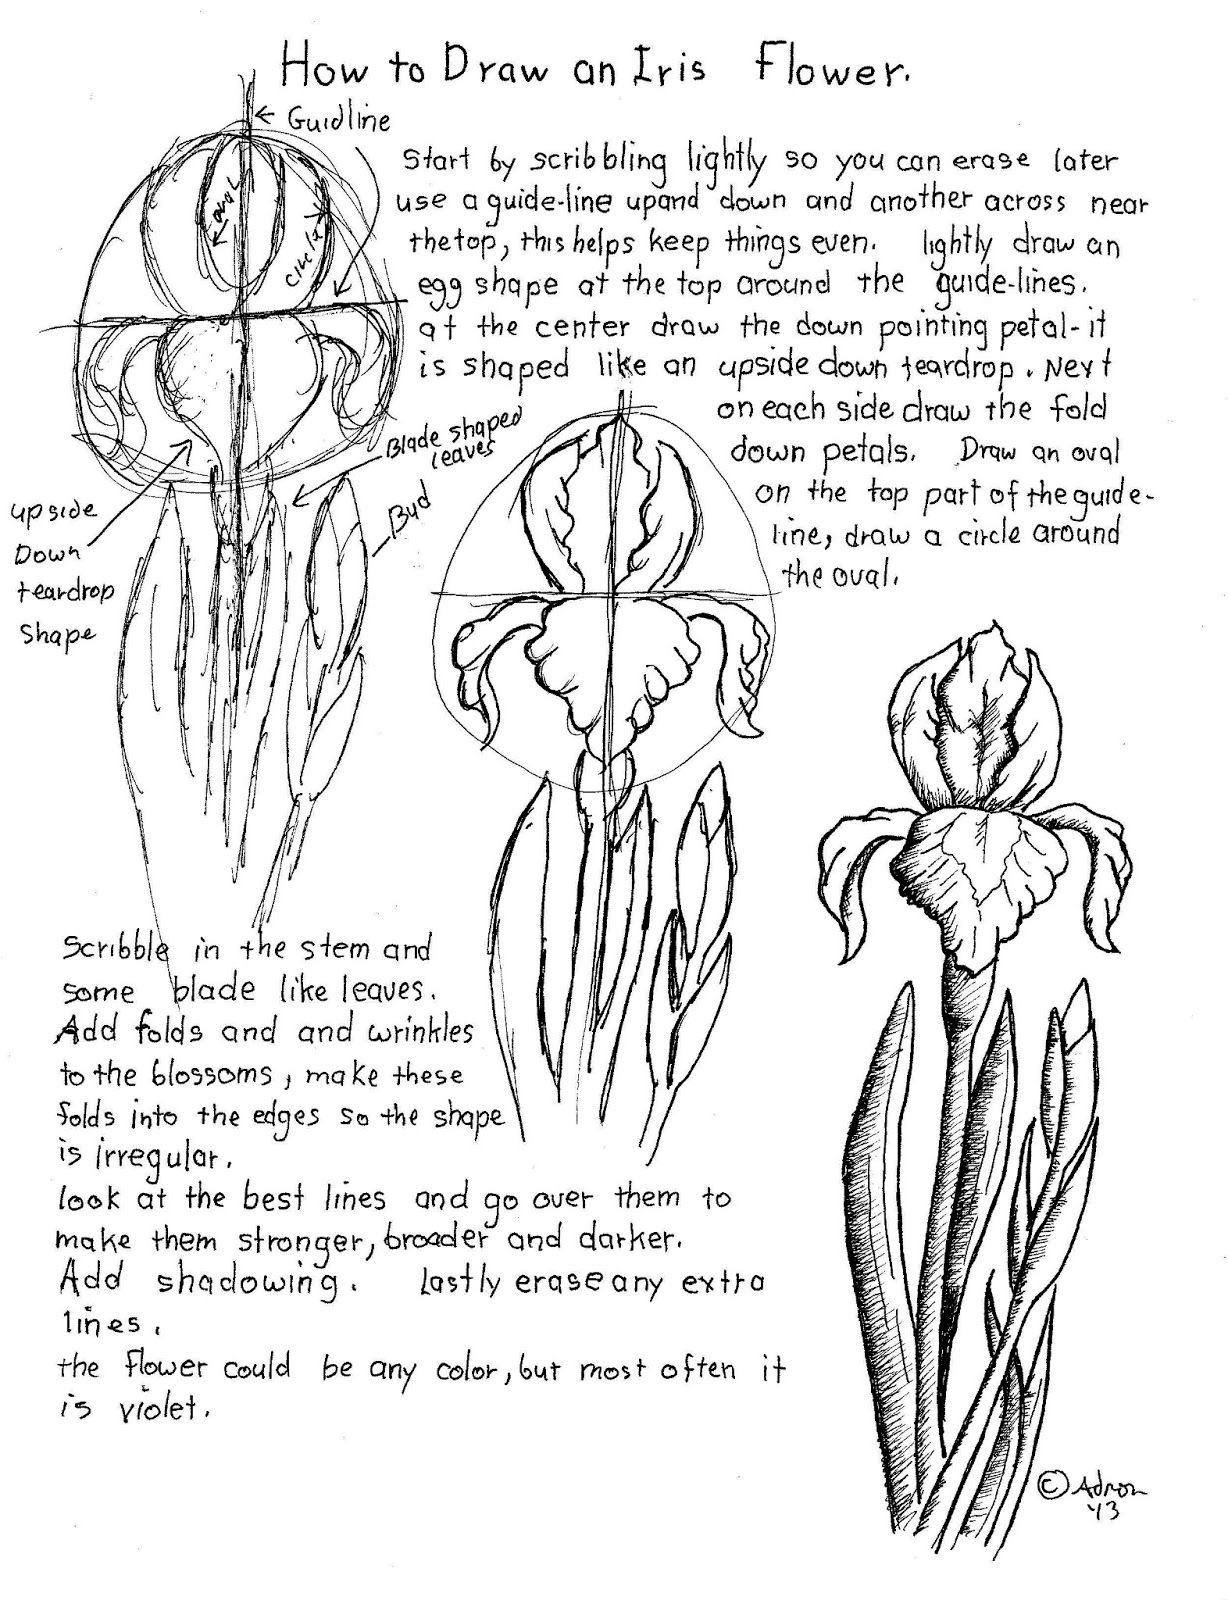 How To Draw An Iris Flower Worksheet Project Notes At The